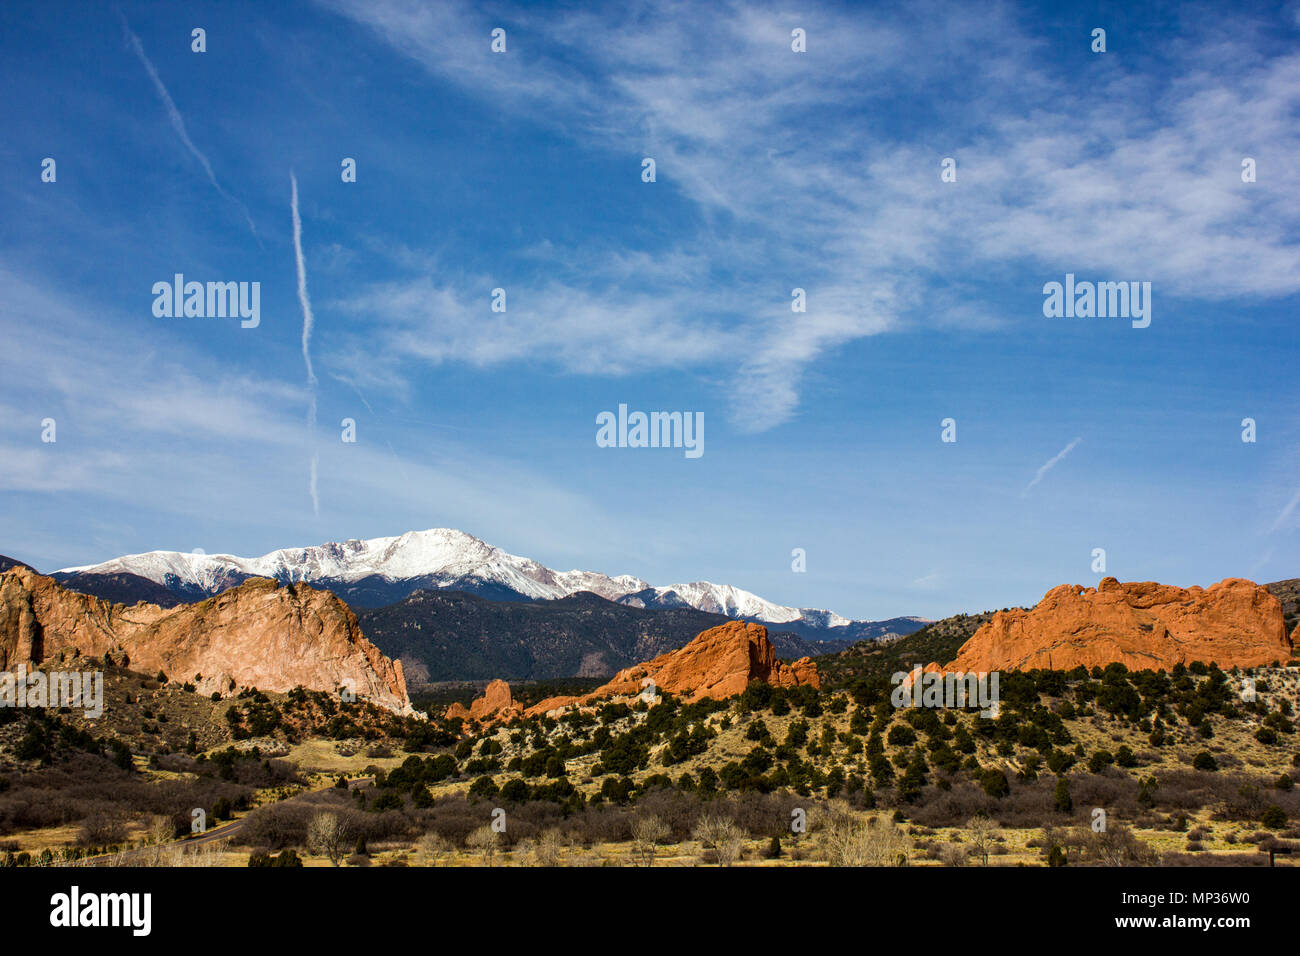 Clear blue sky and magnificent deep-red hue of sandstone at Garden of the Gods, Colorado Springs, Colorado, U.S - Stock Image